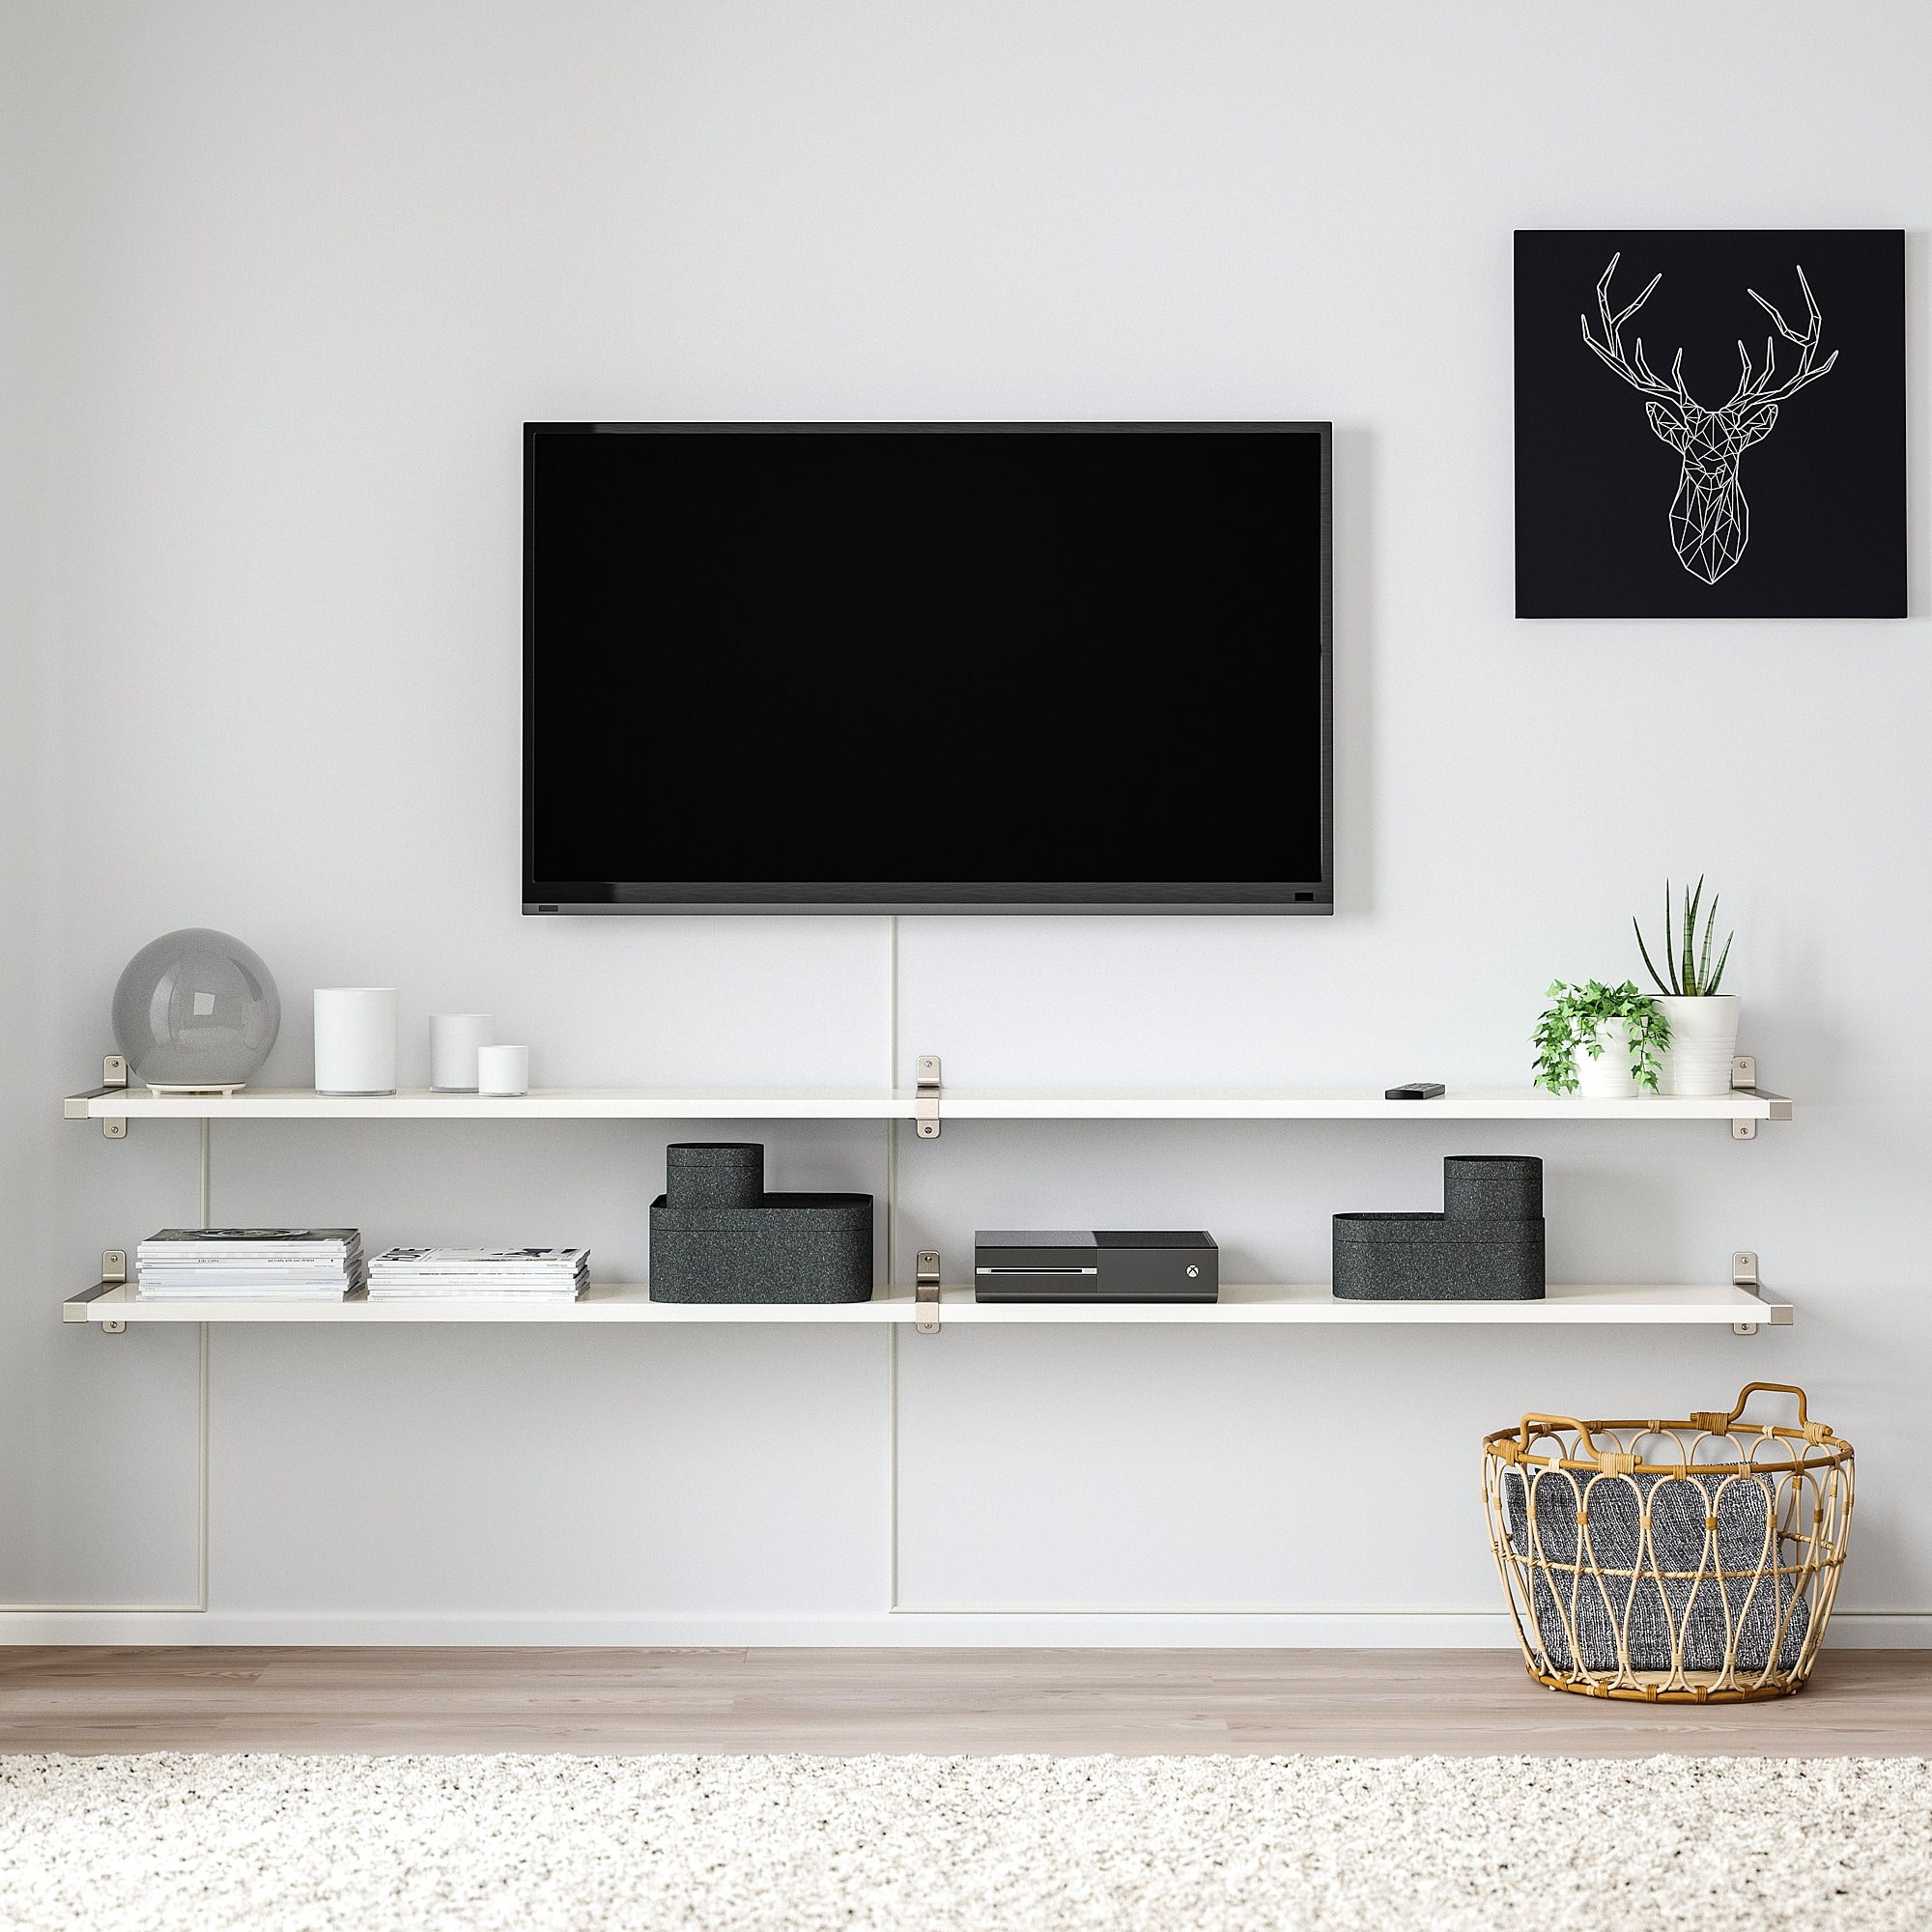 Mensole Per Tv Ikea.Ikea Bergshult Granhult Wall Shelf Combination White Nickel